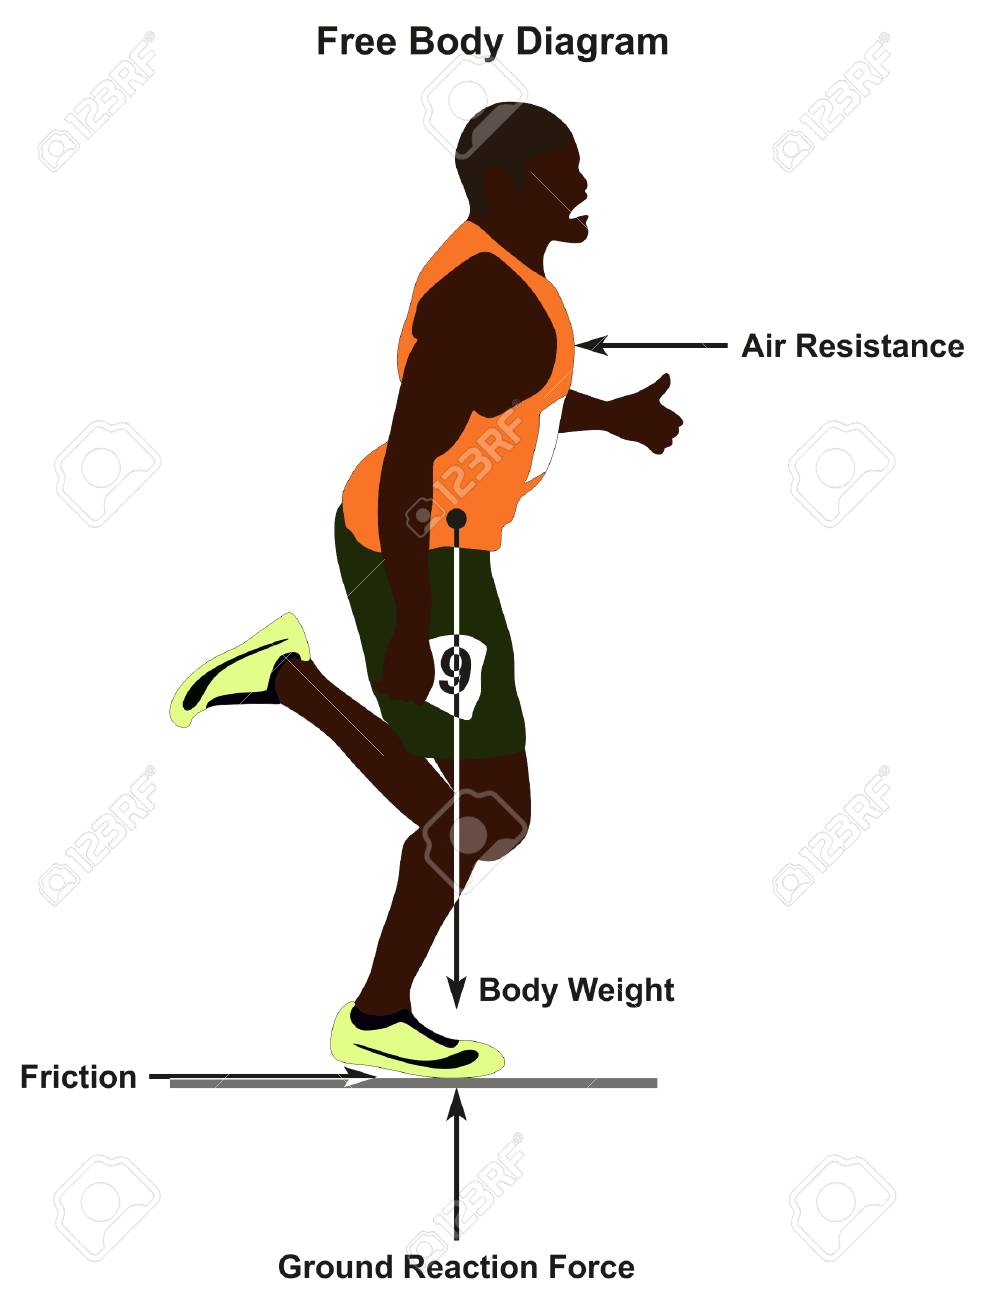 hight resolution of free body diagram showing a man running in straight line and all forces affect him including